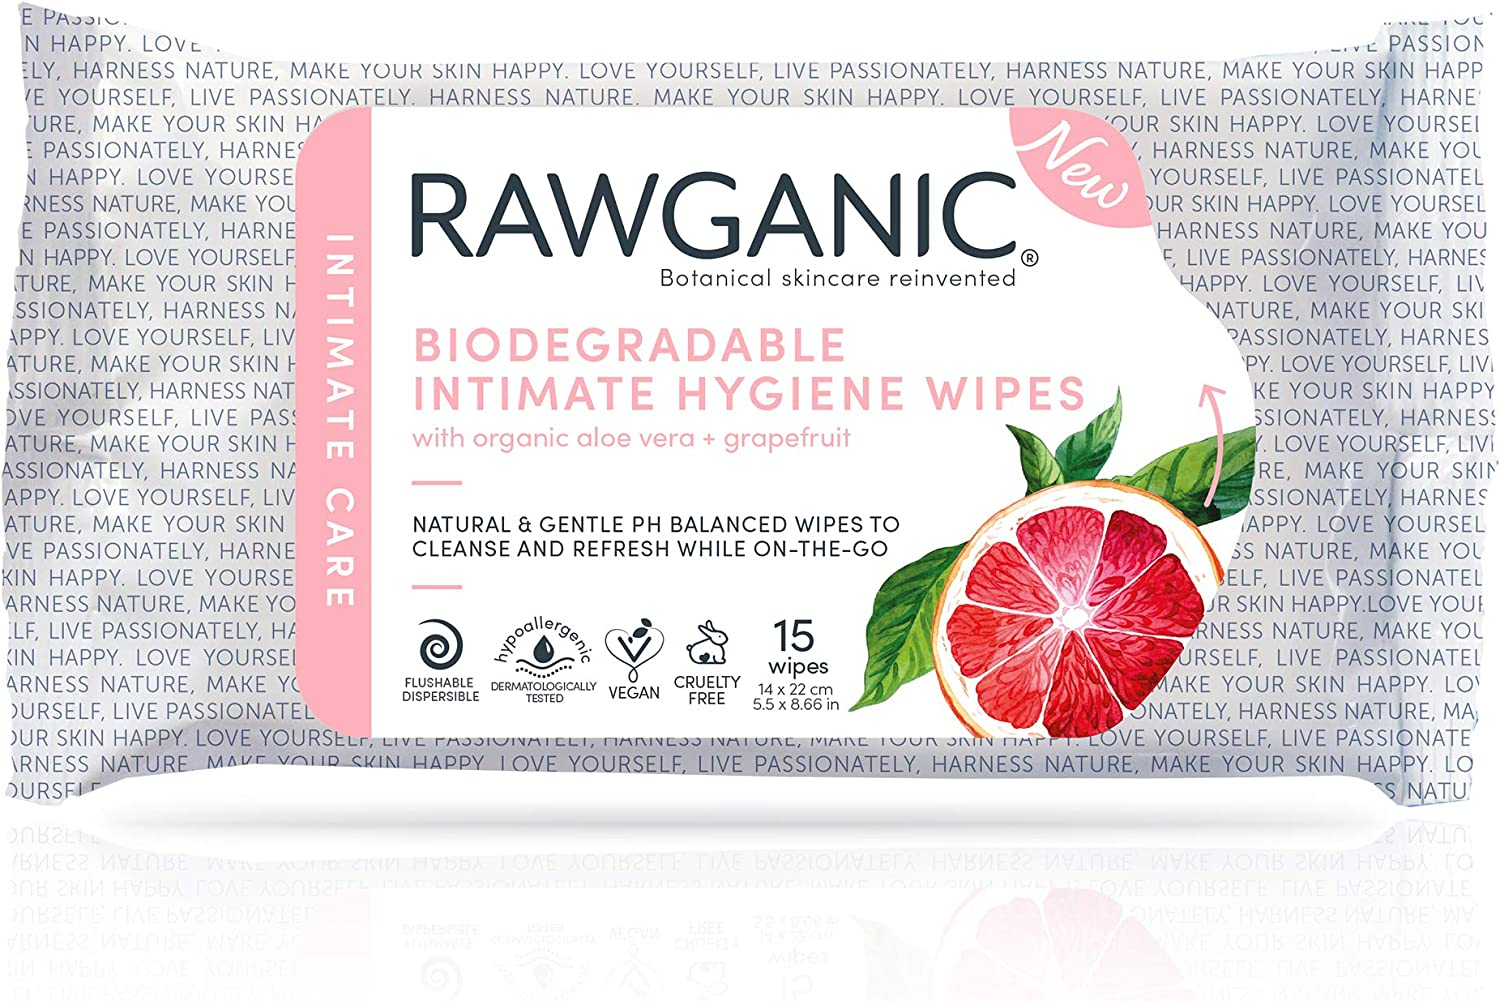 RAWGANIC Gentle Organic Intimate Hygiene Feminine Wipes, Hypoallergenic, Alcohol Free, Flushable and Biodegradable Fragrance-Free Intimate Pre-waxing Wipes (15 Wipes/Pack)